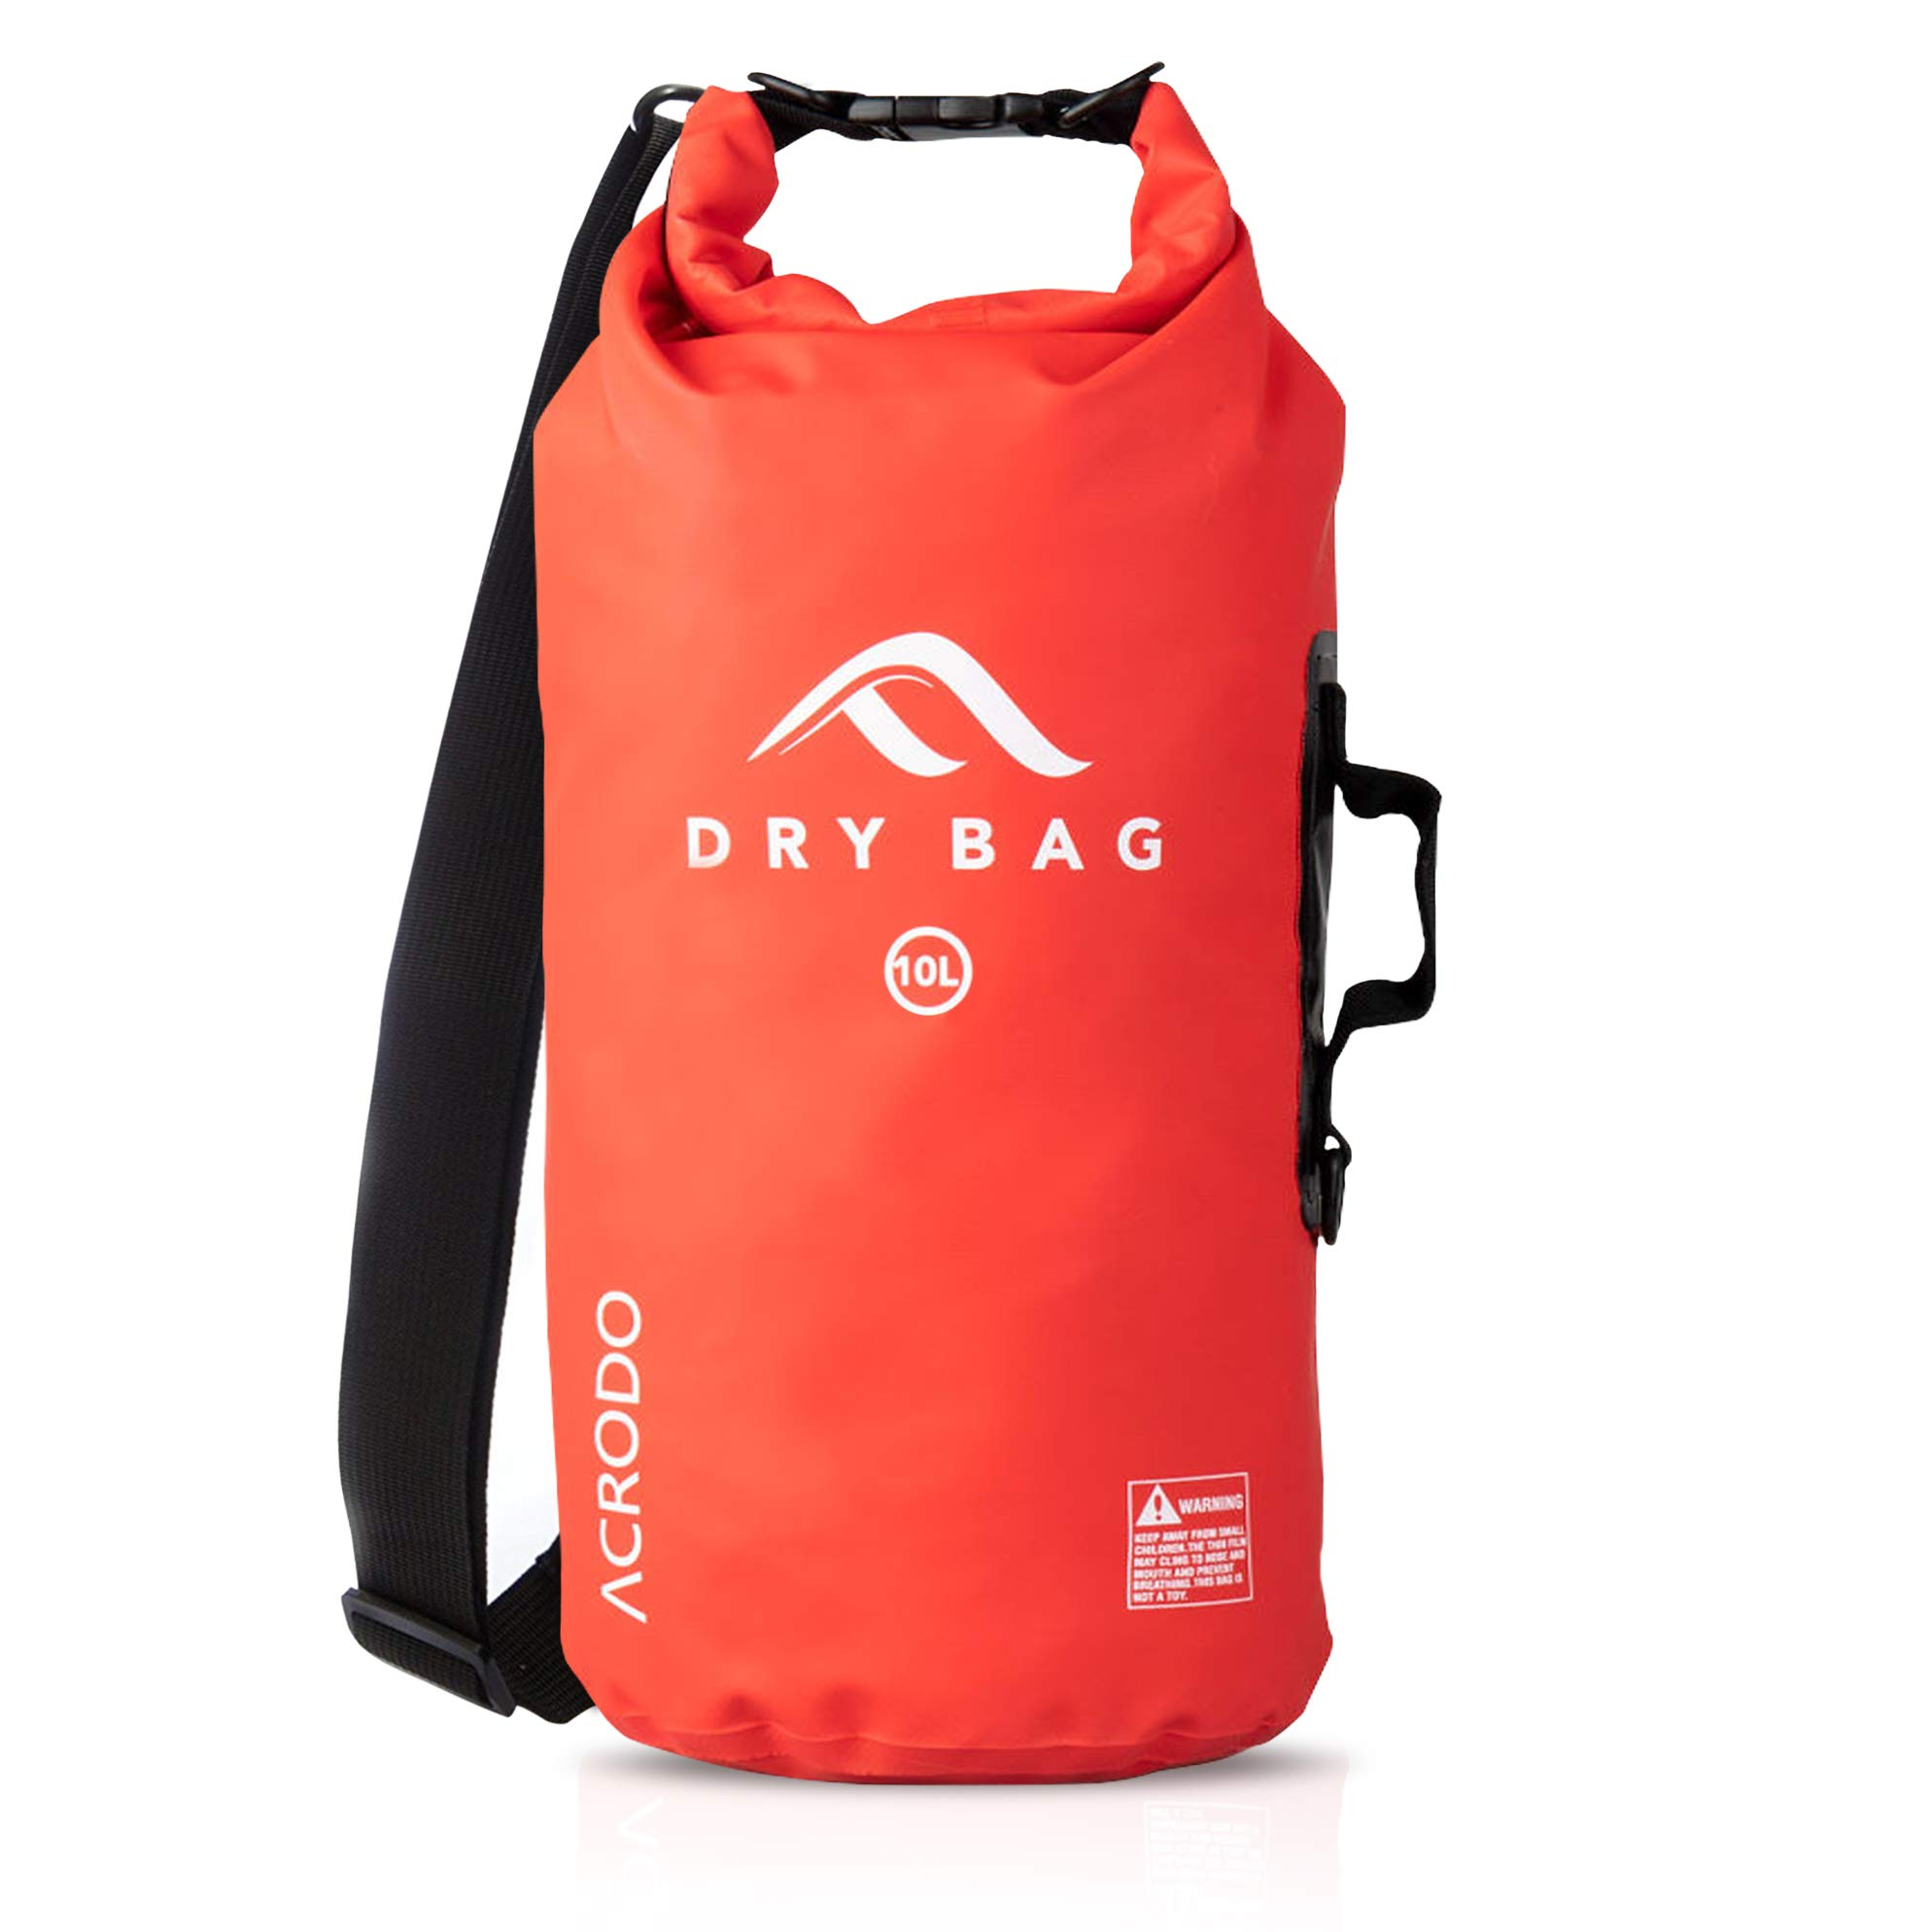 Acrodo Waterproof Dry Bag - Red 10 Liter Floating Sack for Beach, Kayaking, Swimming, Boating, Camping, Travel & Gifts by Acrodo